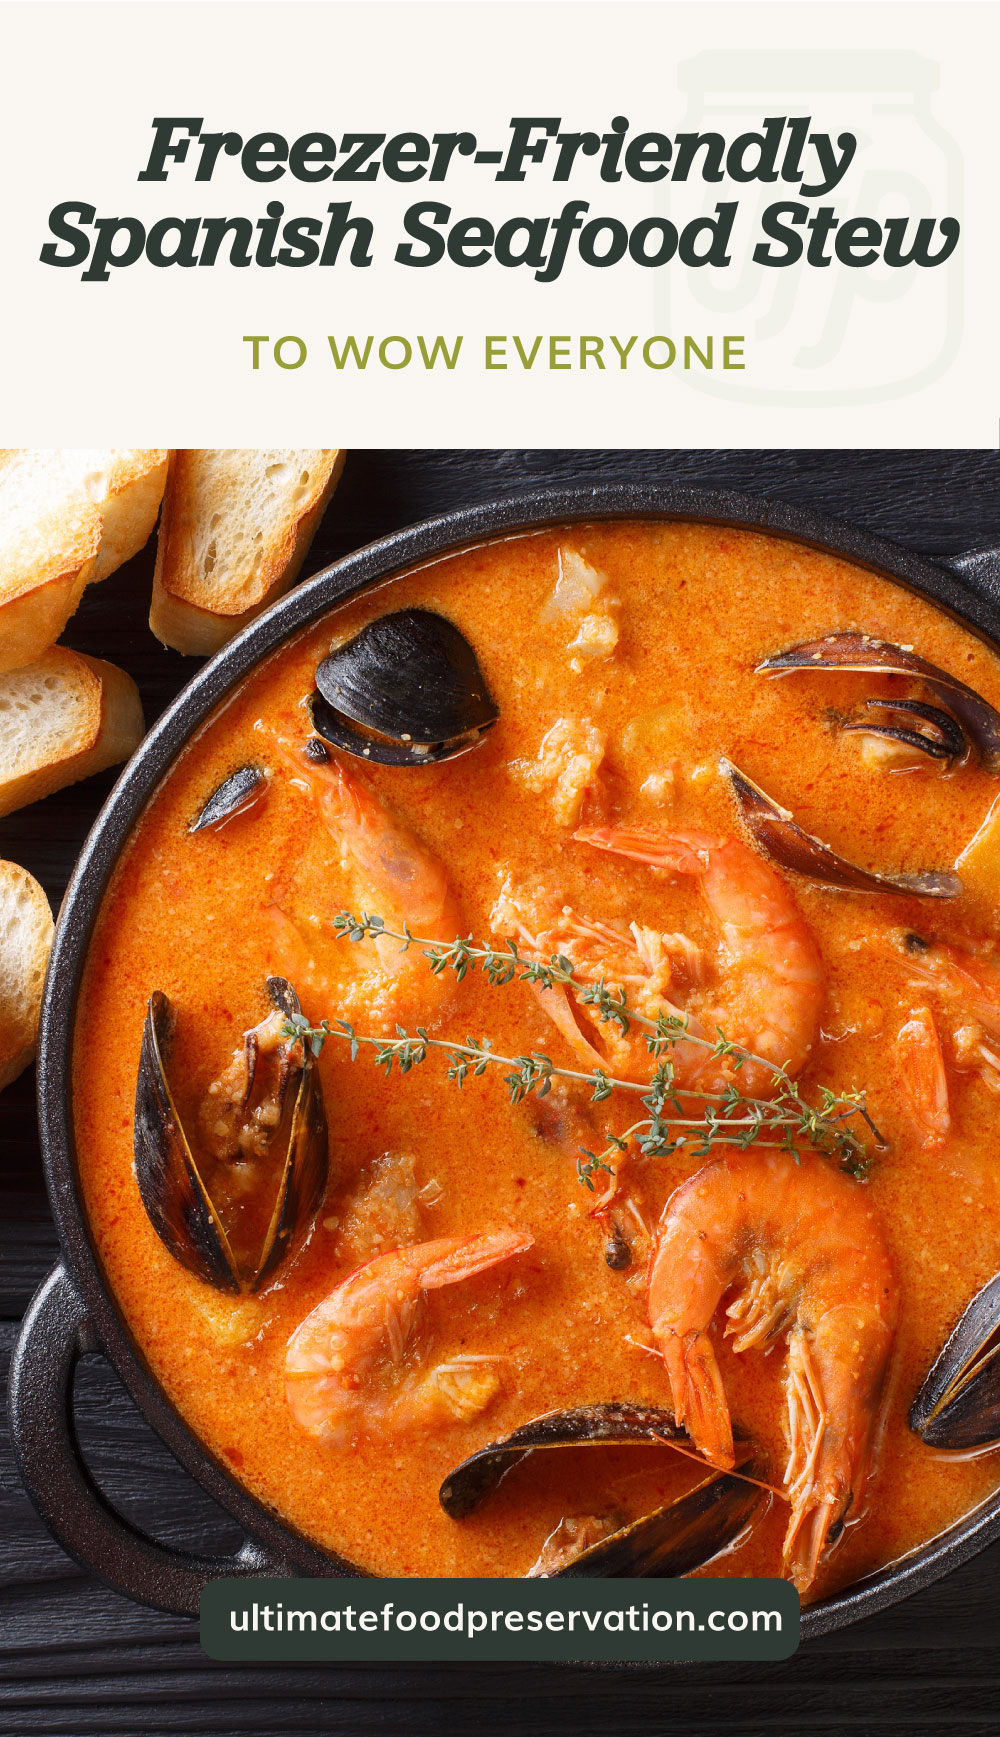 "Text area which says ""Freezer-Friendly Spanish Seafood Stew To Wow Everyone"" next to a top view of seafood stew served with toast followed by another text area which says ultimatefoodpreservation.com"